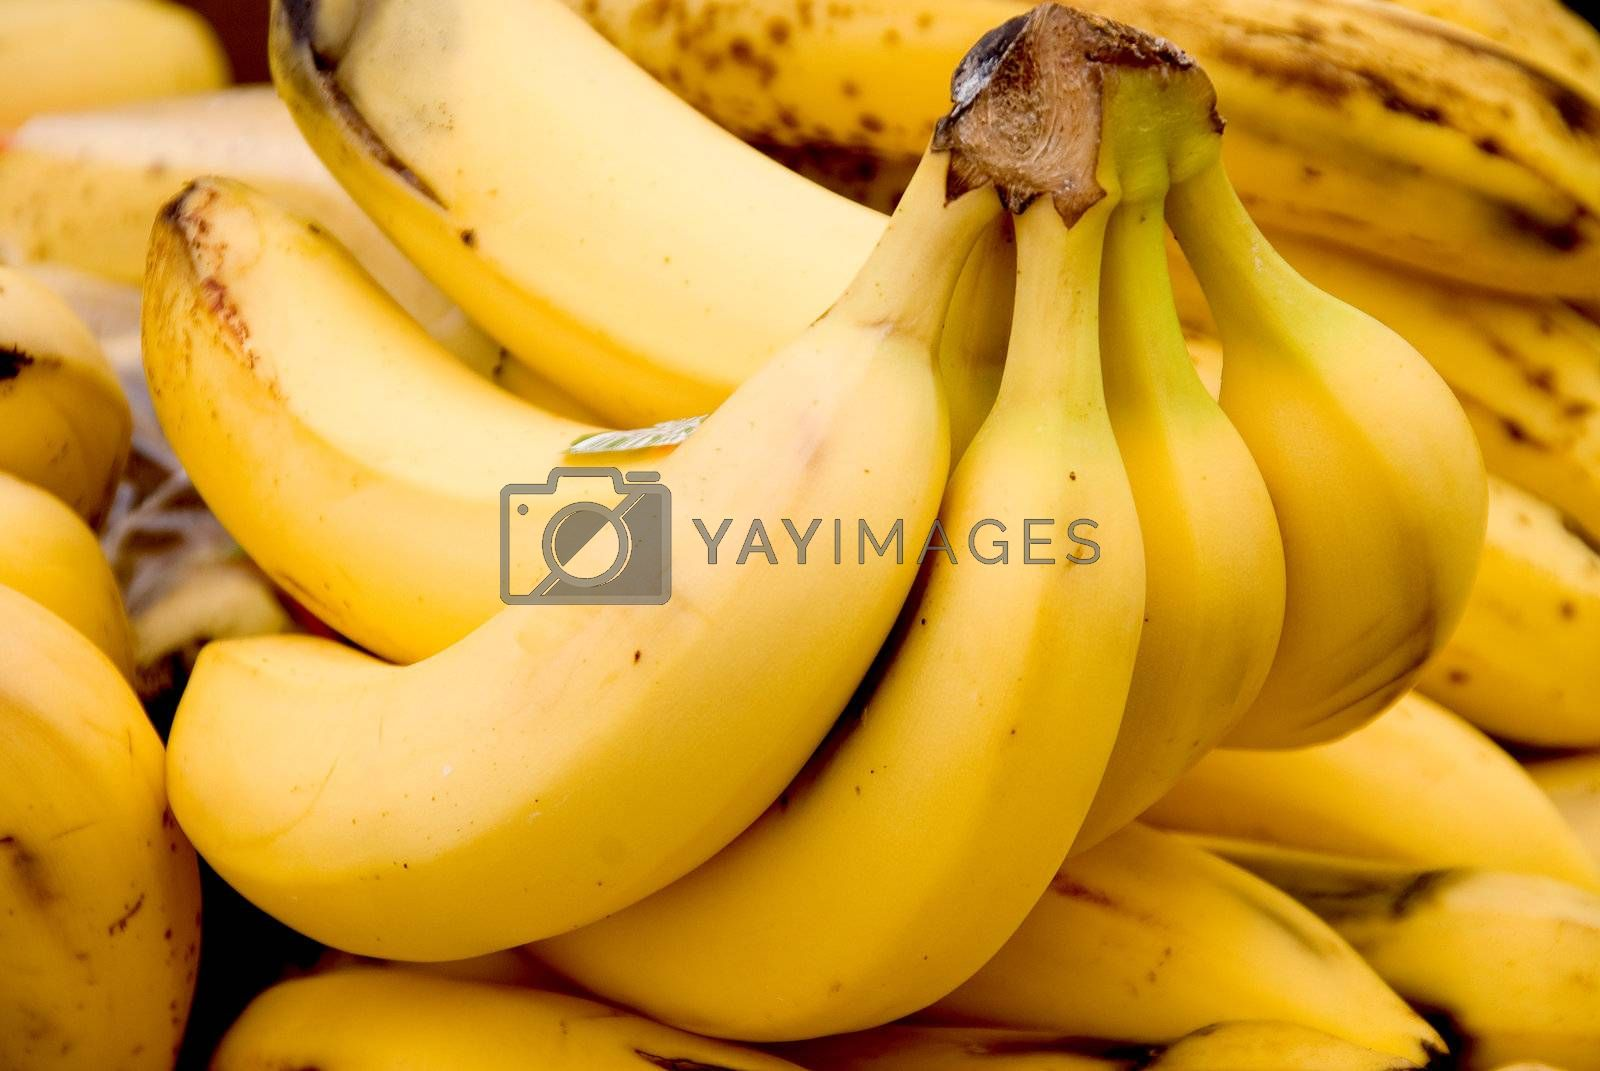 A fresh and delicious banana ready to be eaten.